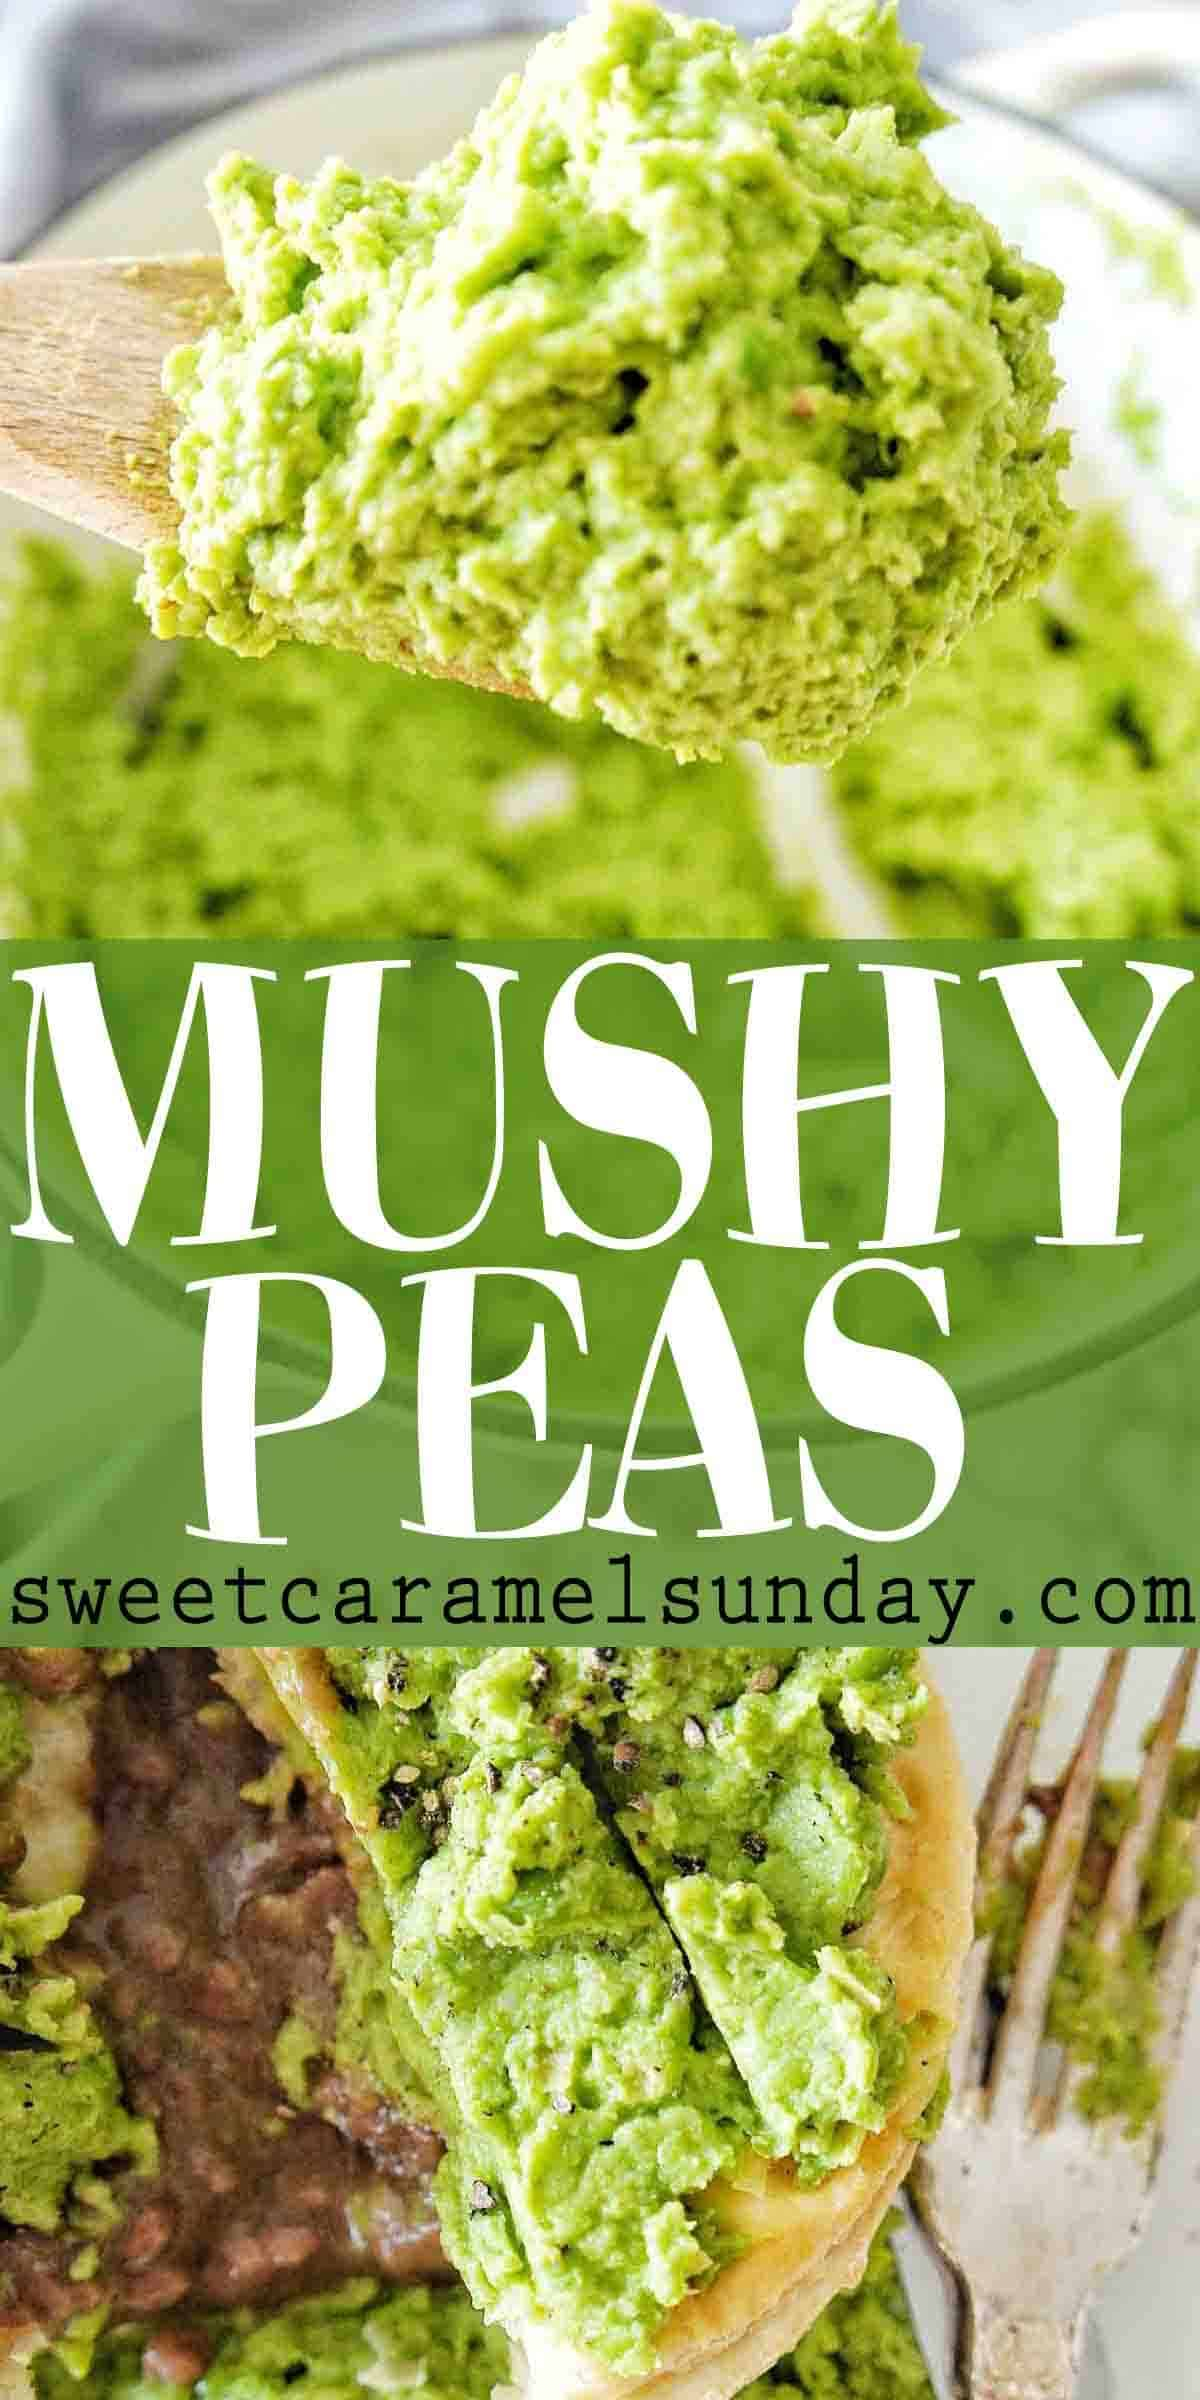 Mushy Peas with text overlay